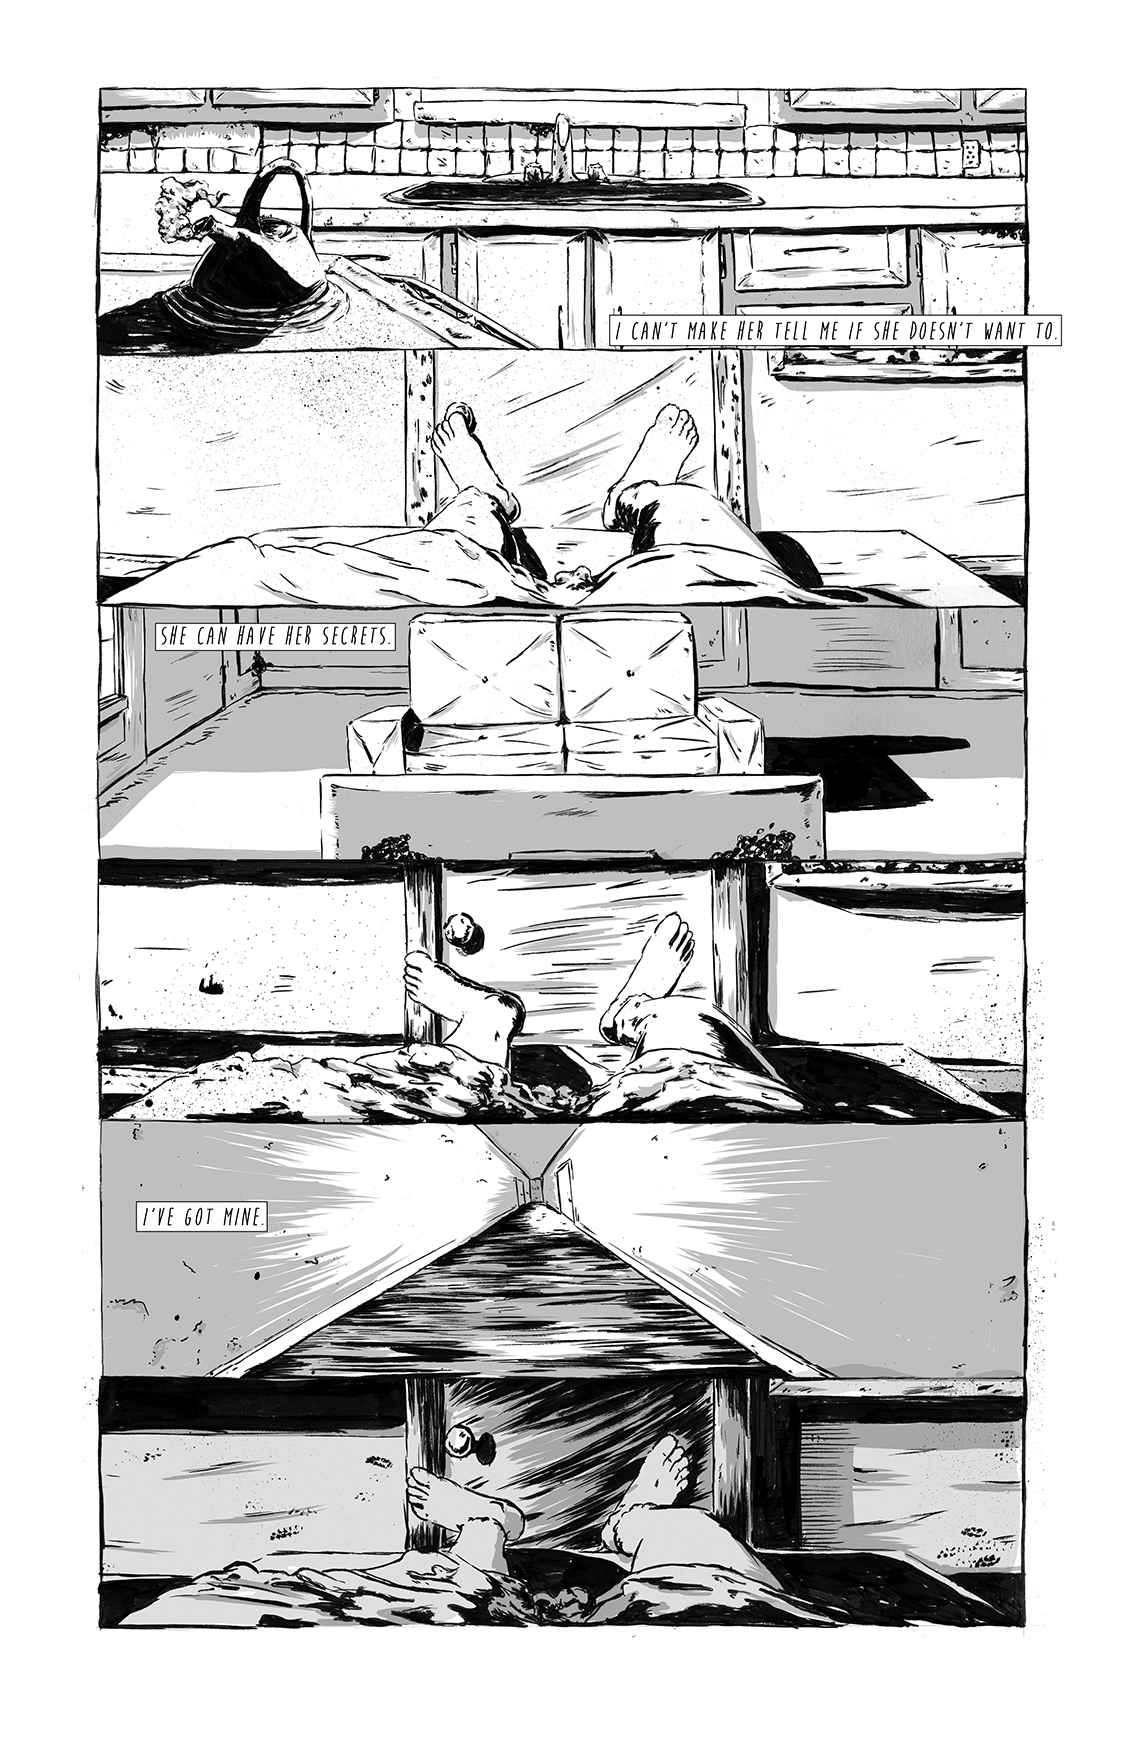 Eight Days Alone, page 13, by Sam Costello and Matthew Goik